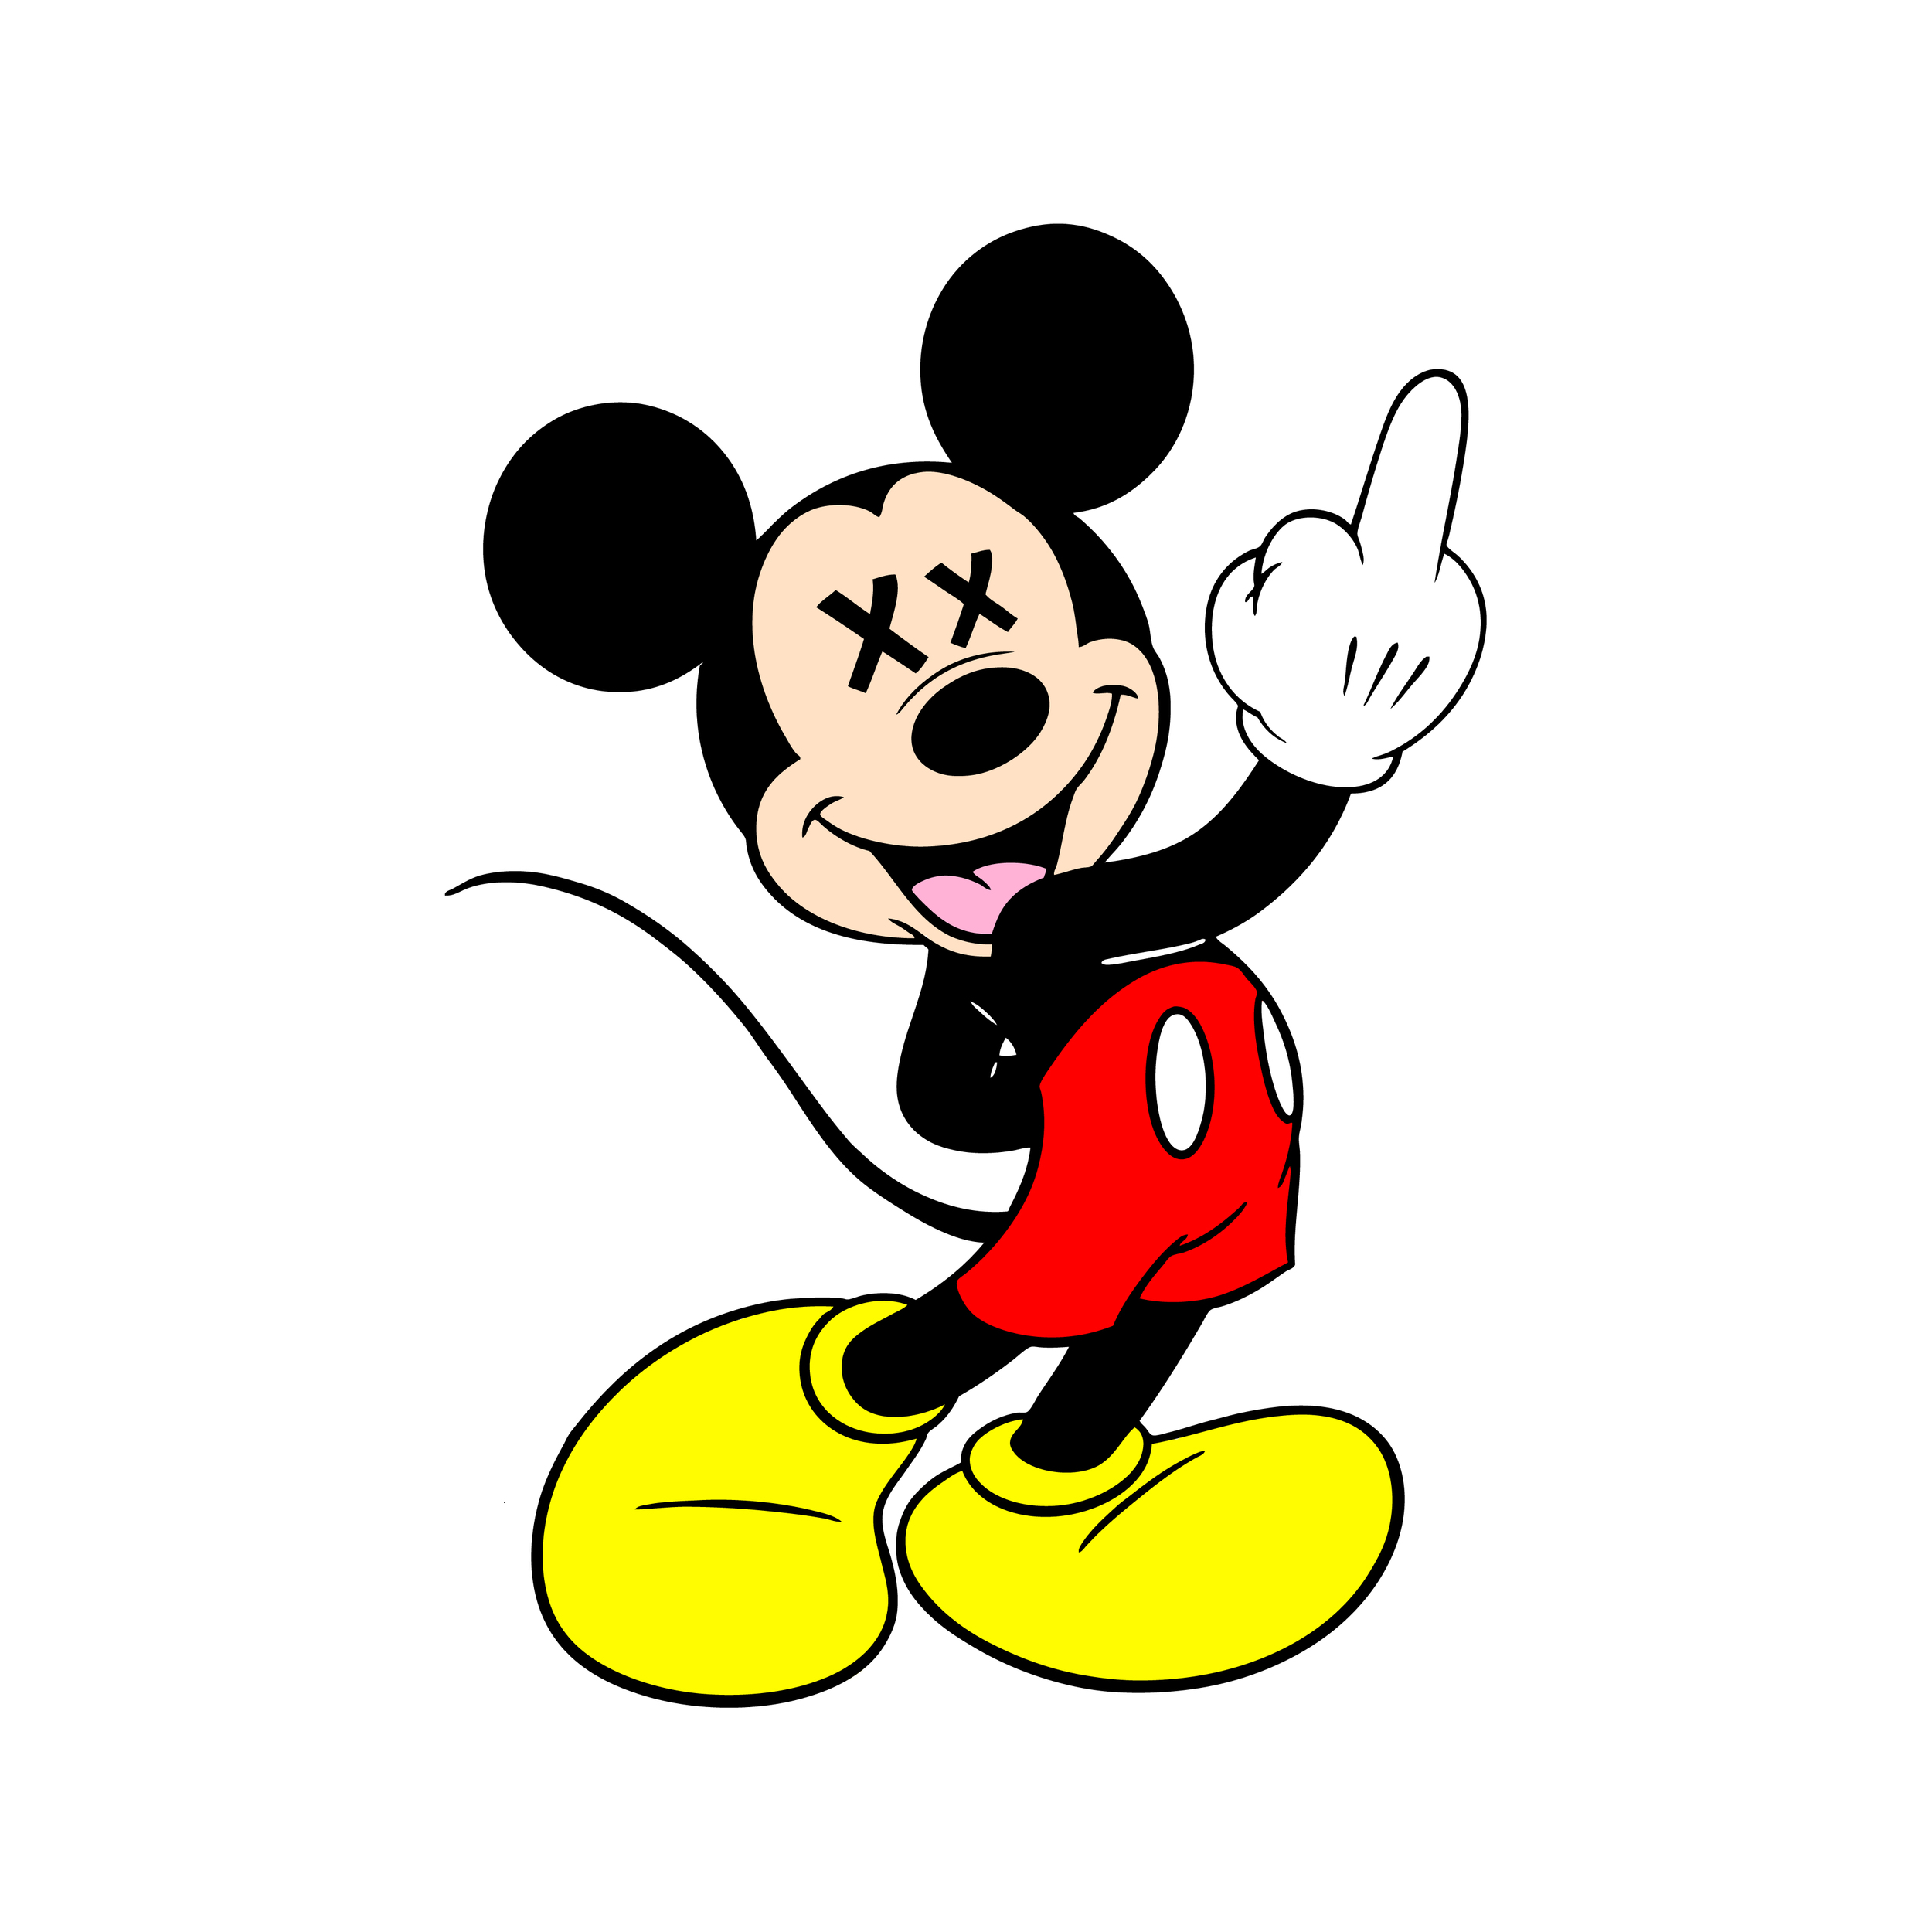 mickey_color.jpg